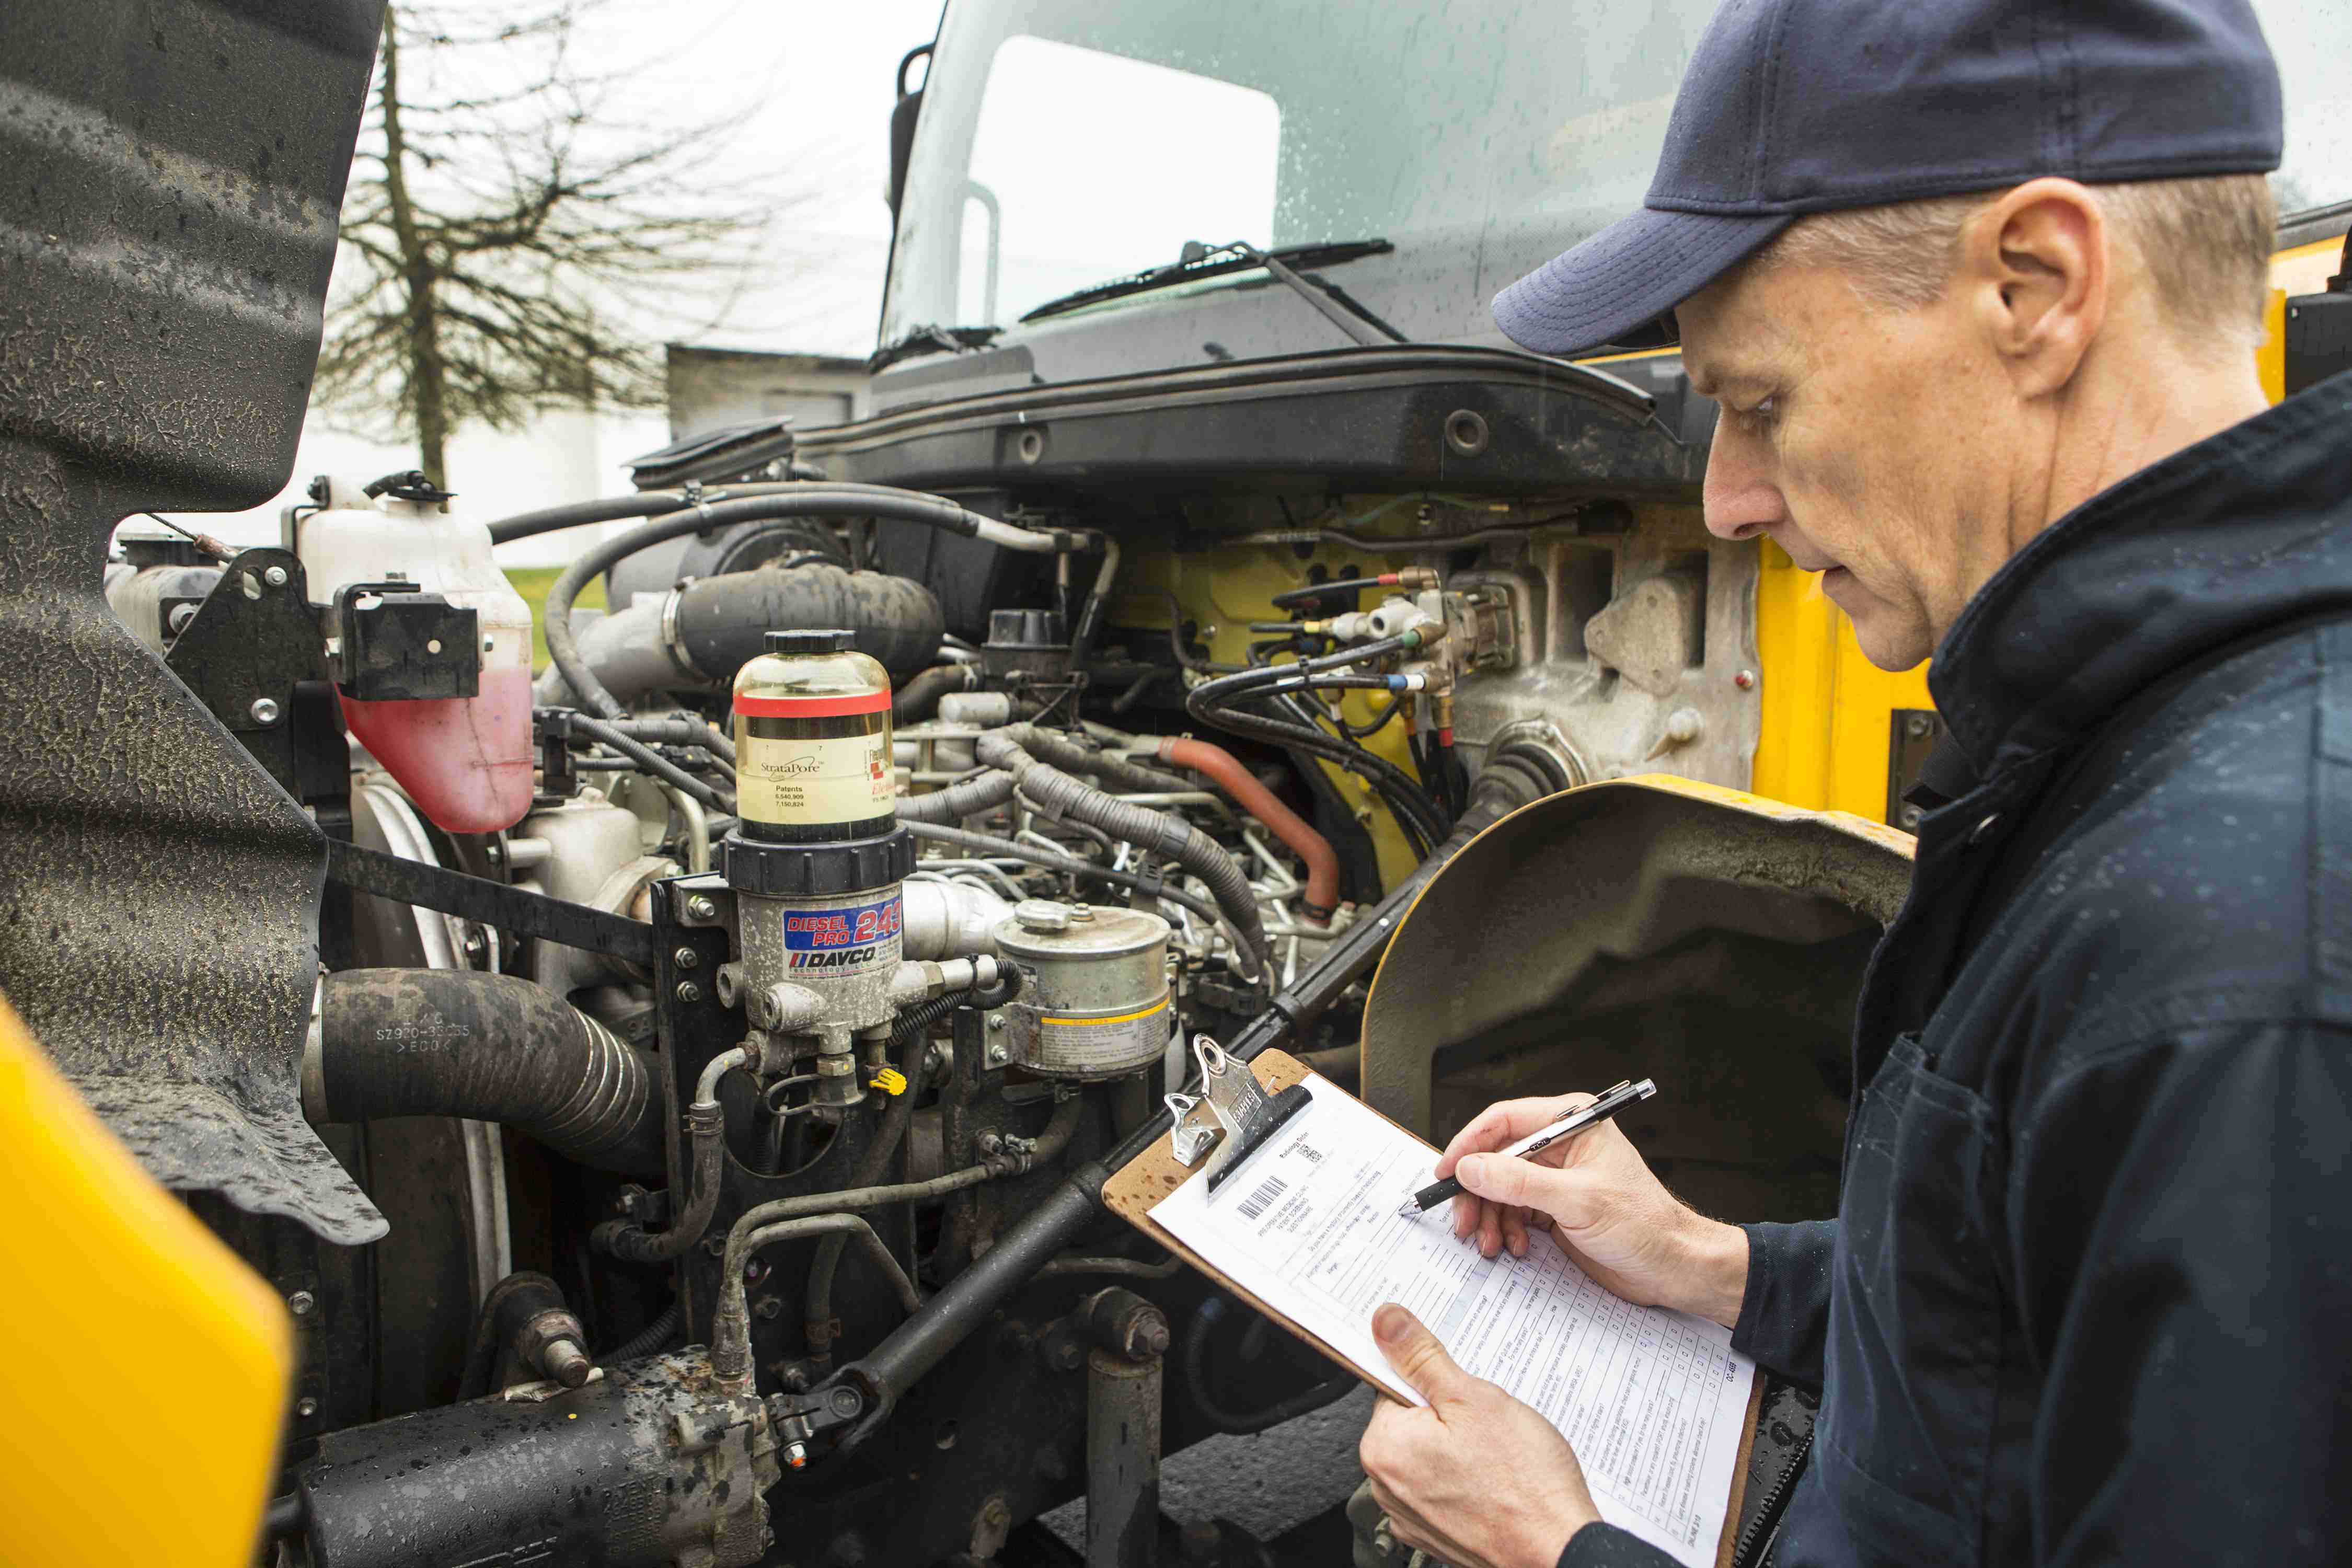 Fmcsa Publishes Rule Eliminating No Defect Driver Vehicle Inspection Reports